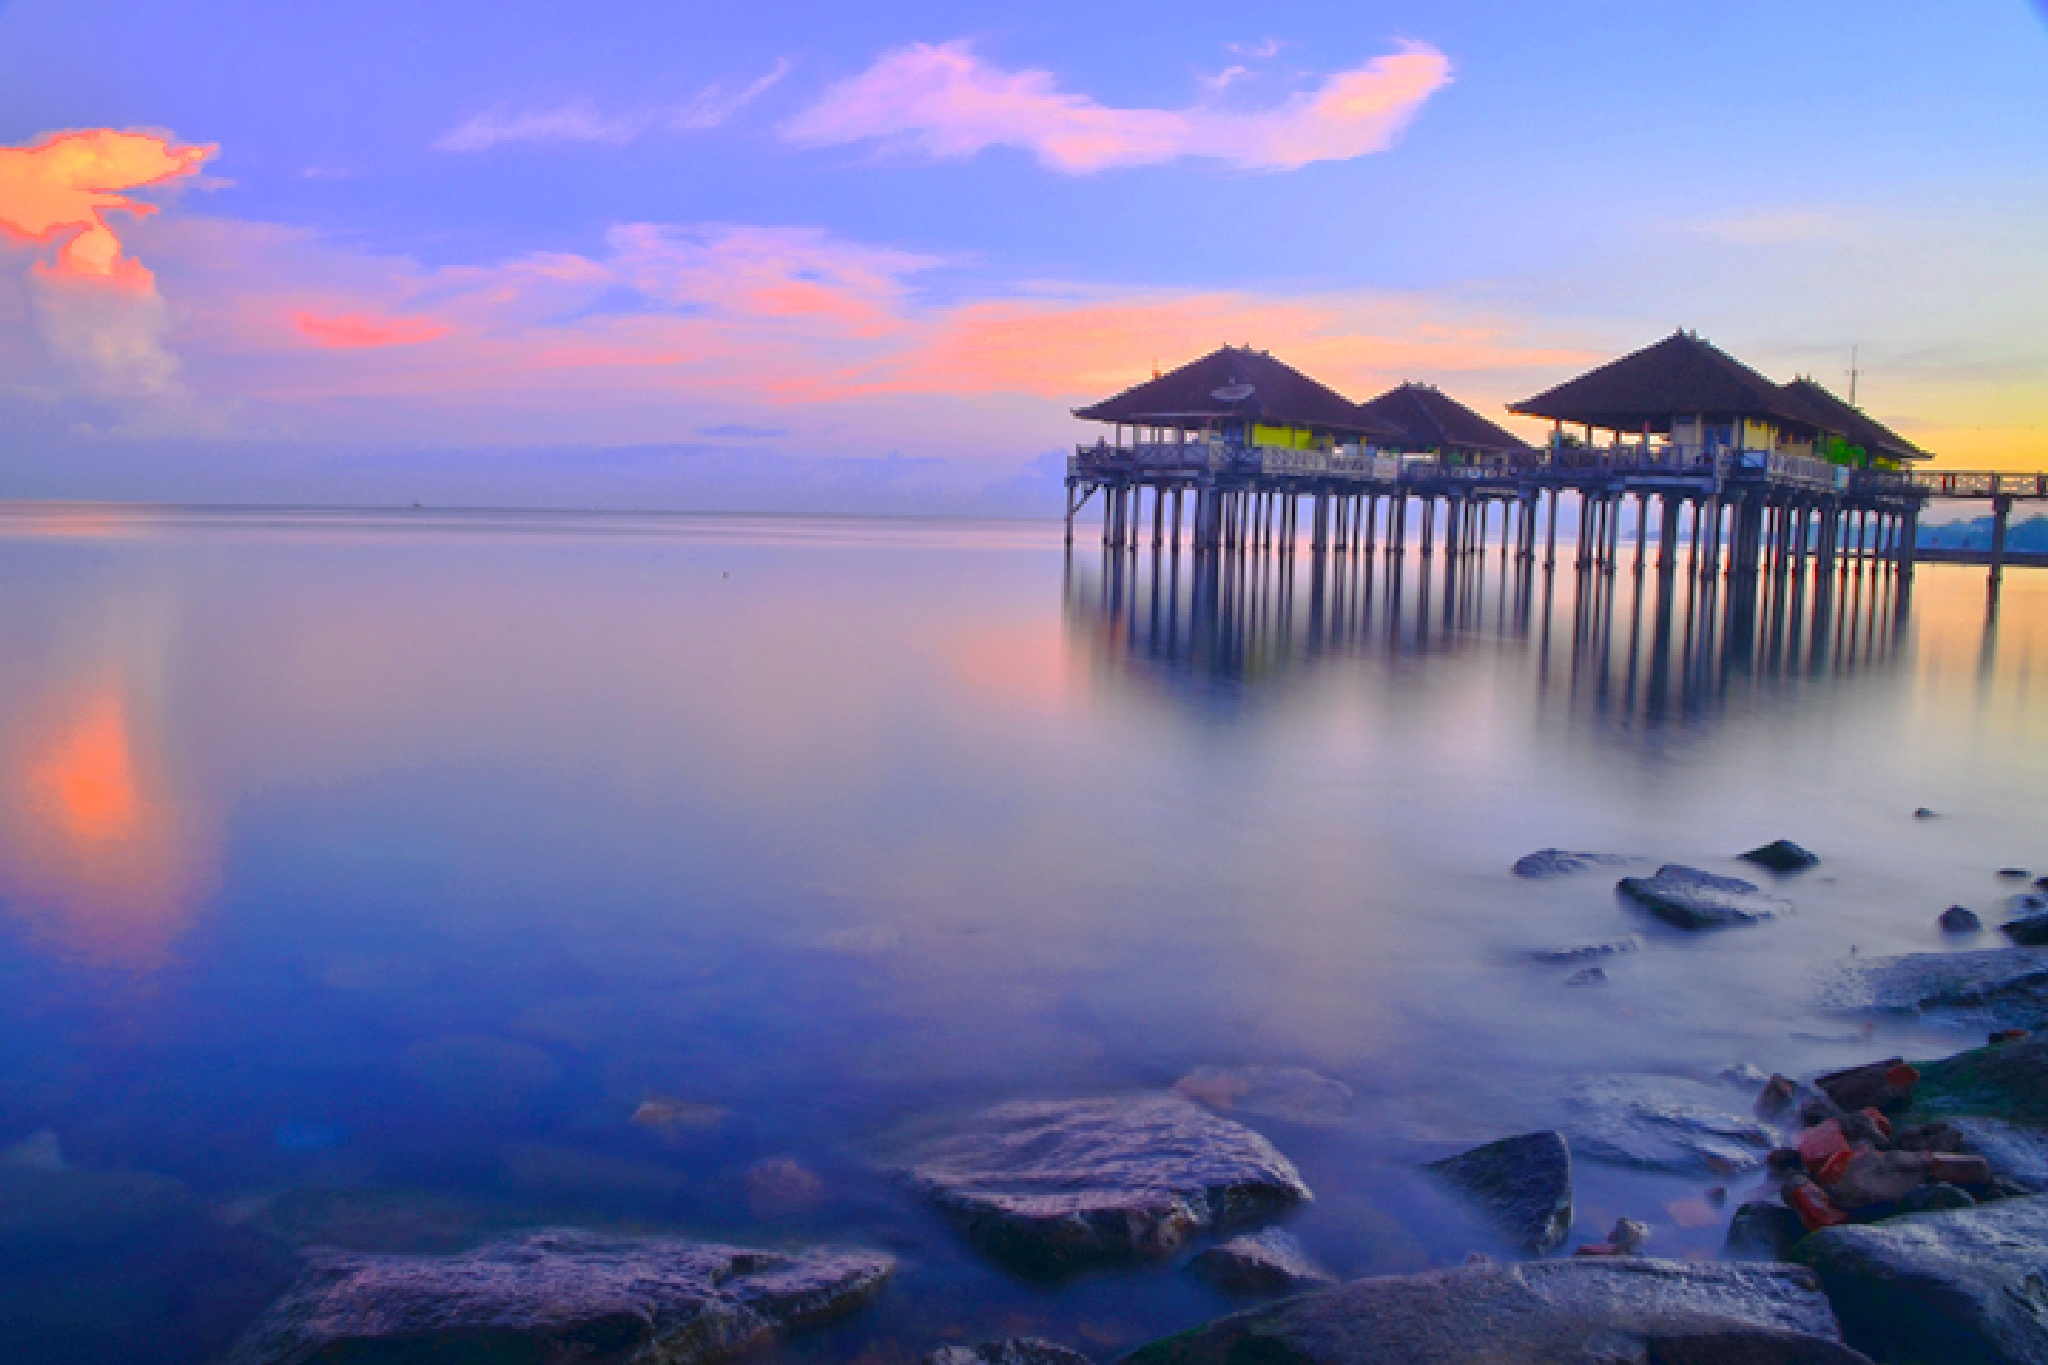 early morning at buleleng harbour by dewaputra